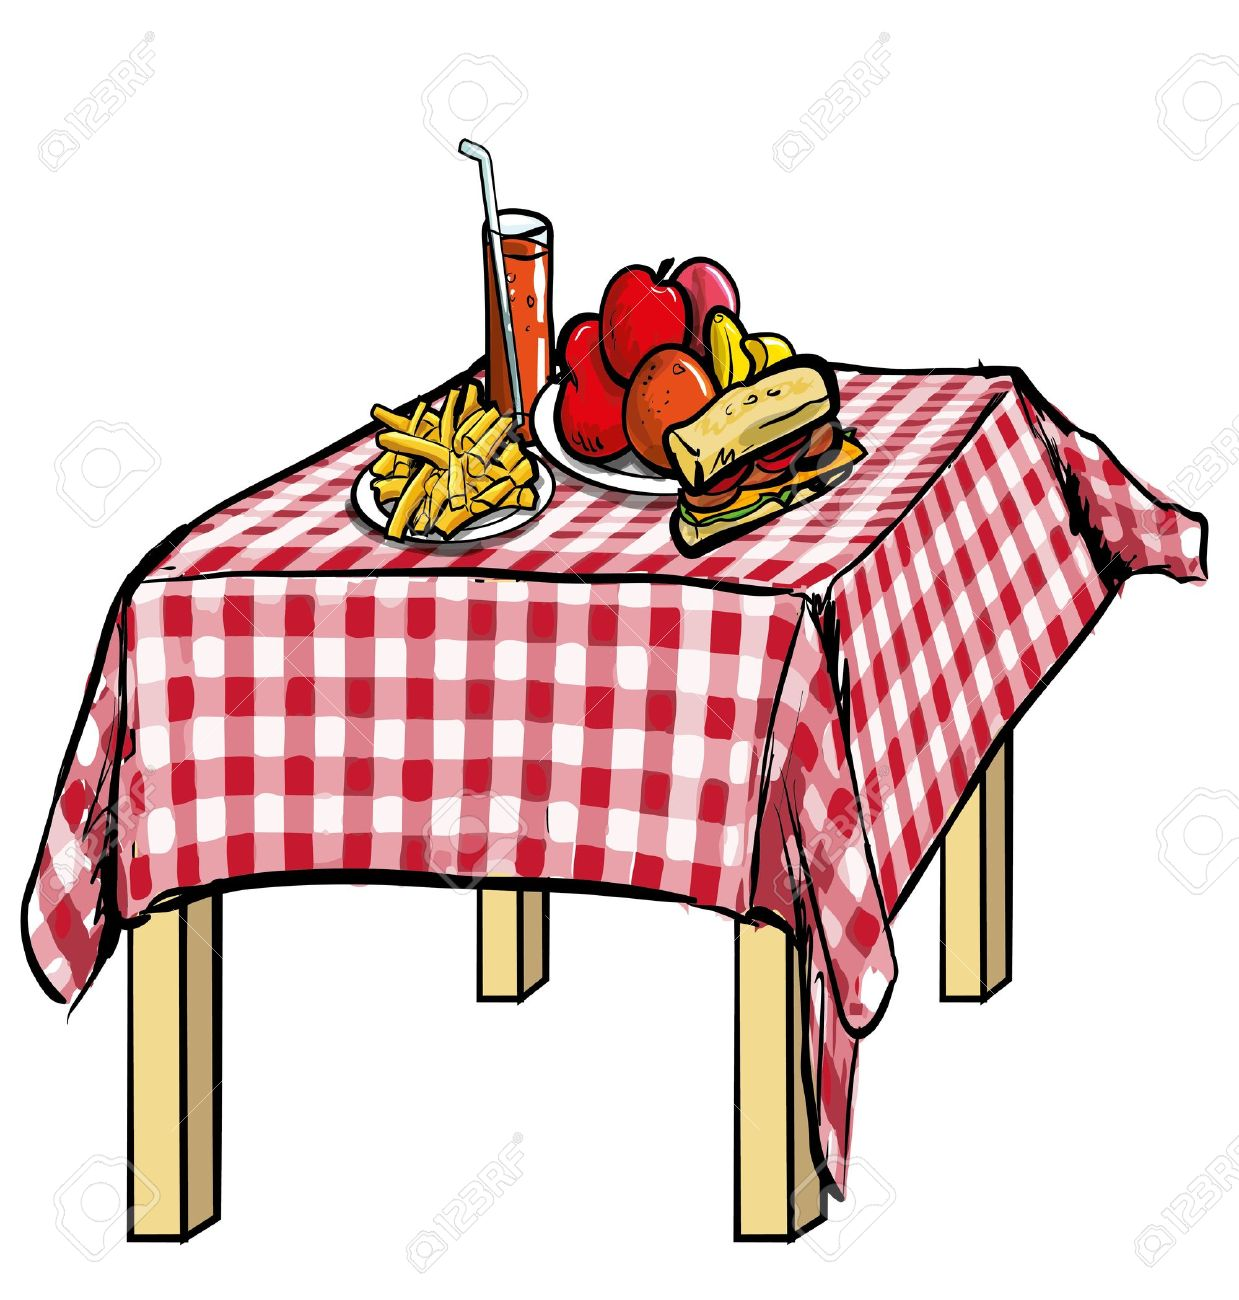 Table With Food Clipart.